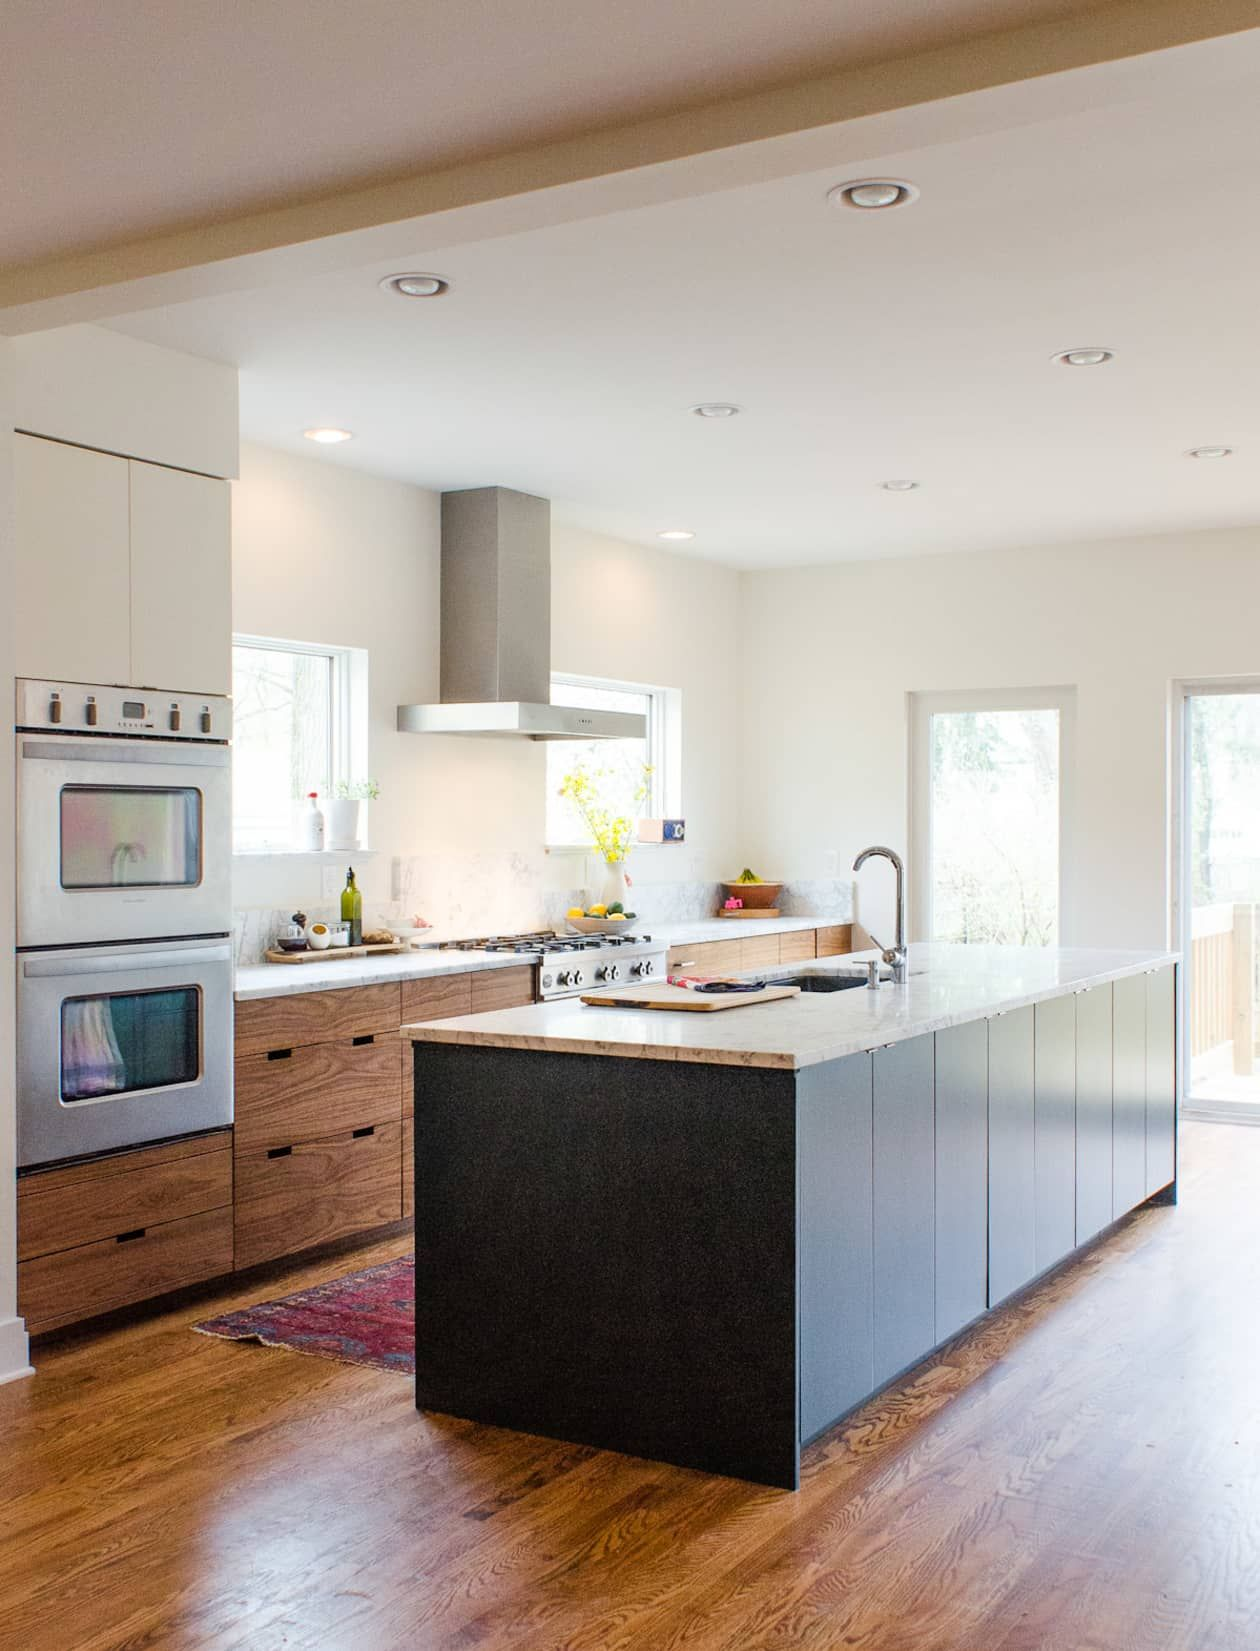 Faith's Kitchen Renovation: The Big Reveal, the Final ...